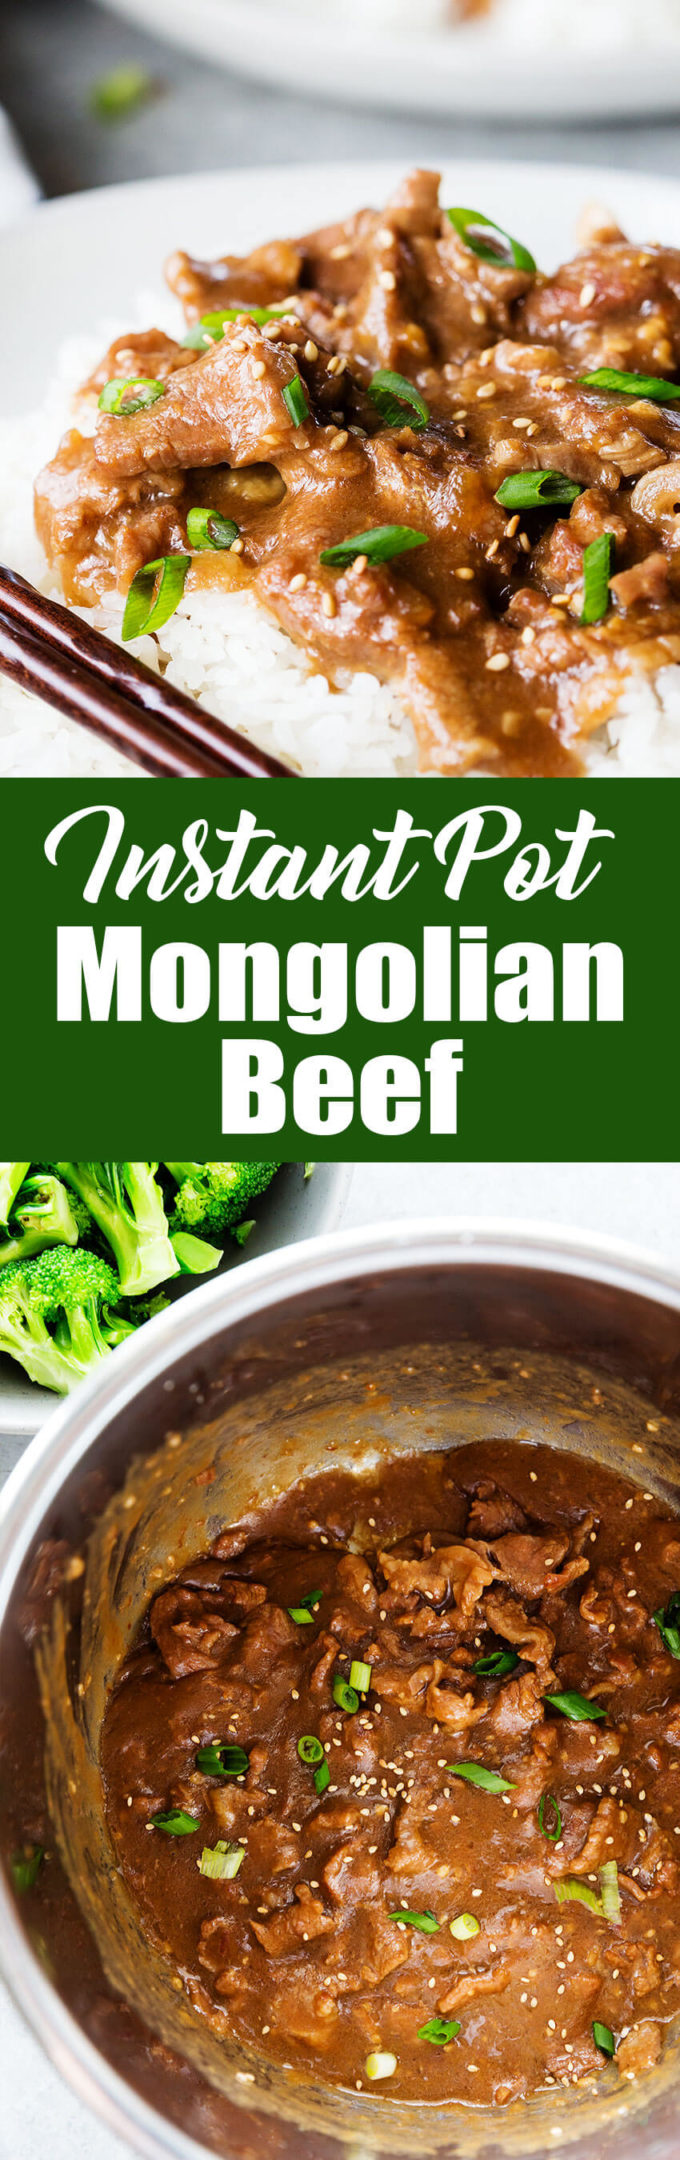 Super easy and delicious Mongolian beef cooked in the instant pot pressure cooker!